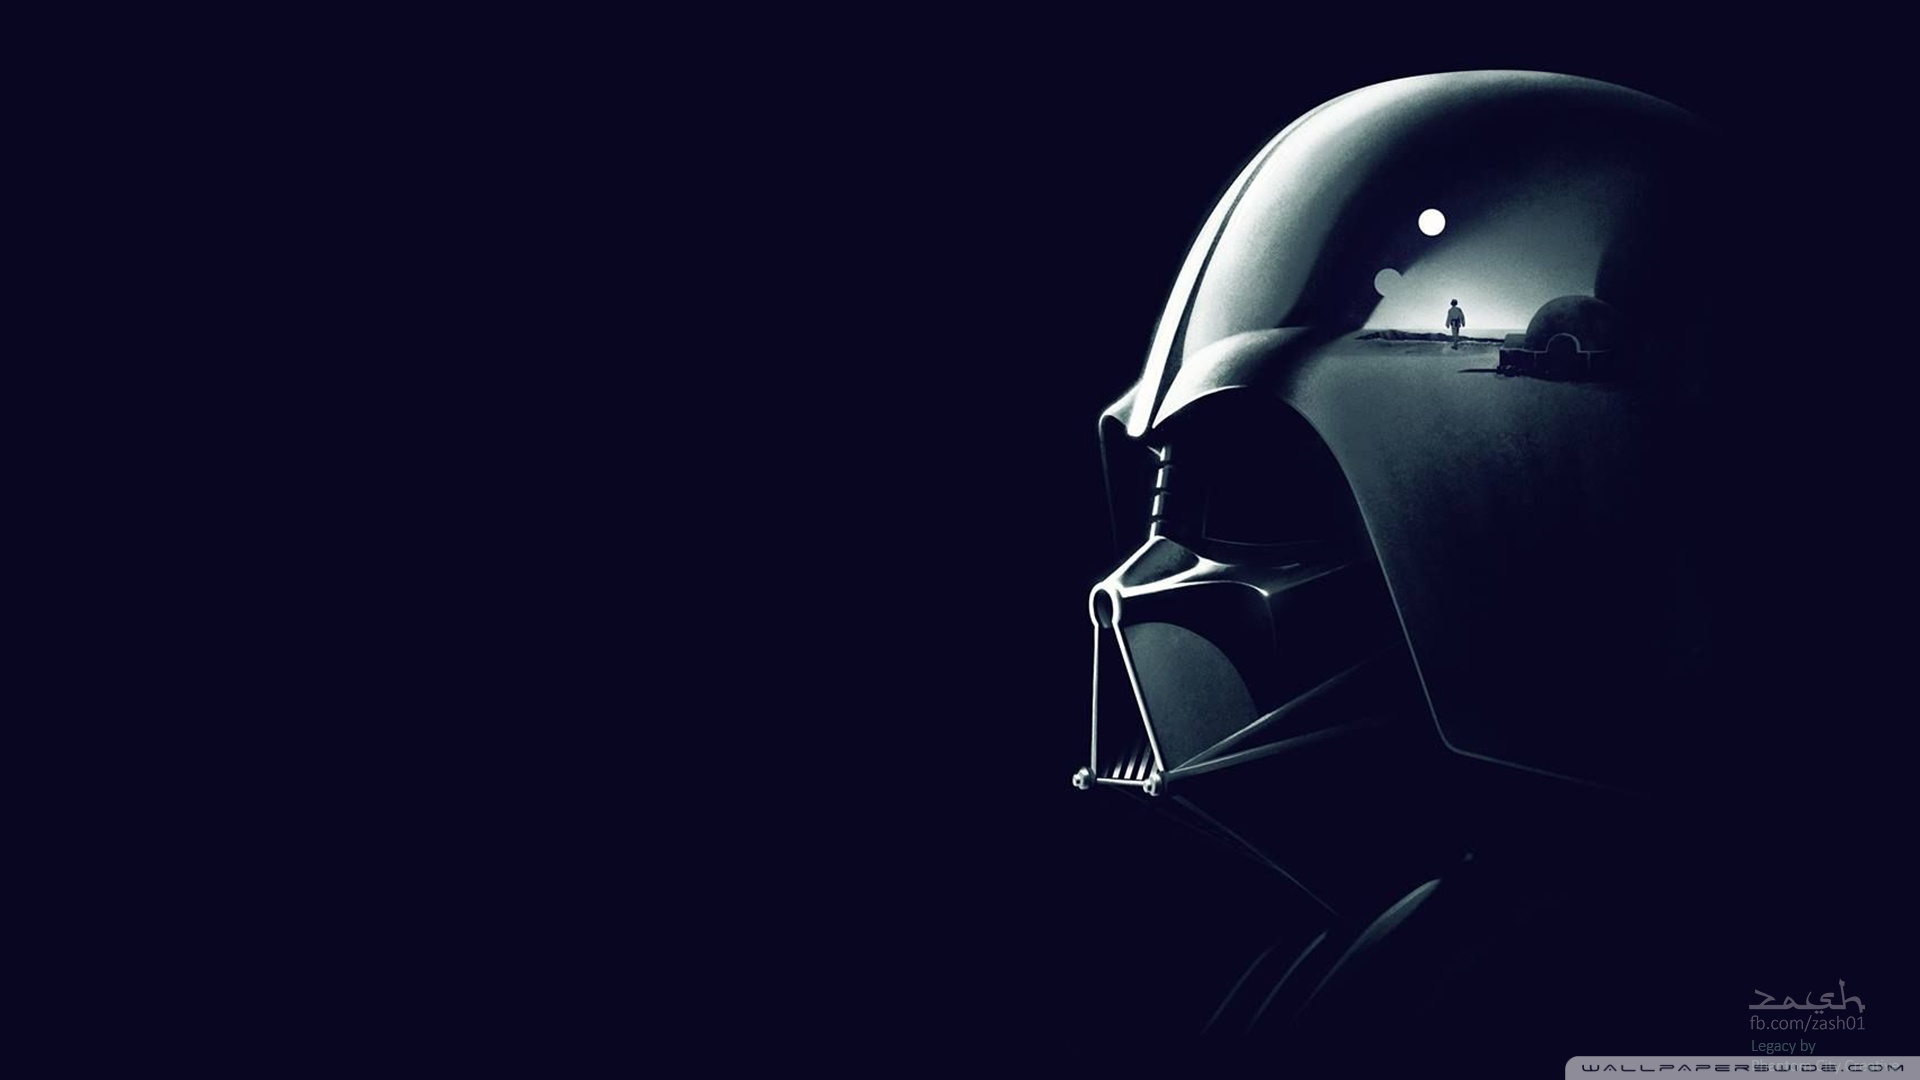 star wars hd desktop wallpaper hd wallpapers